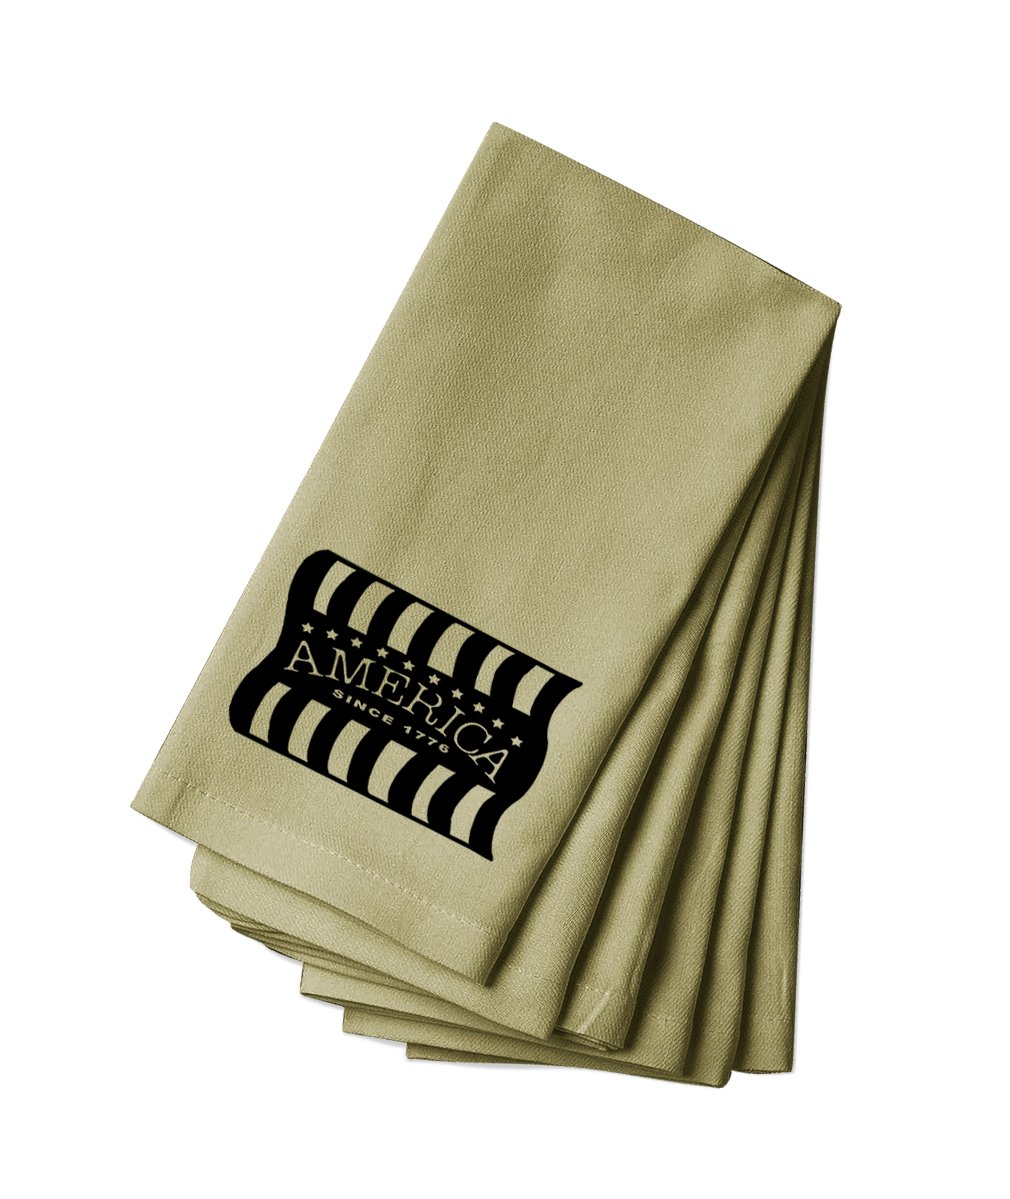 Style in Print Cotton Canvas Dinner Napkin Set Of 4 America Since 1776#3 By